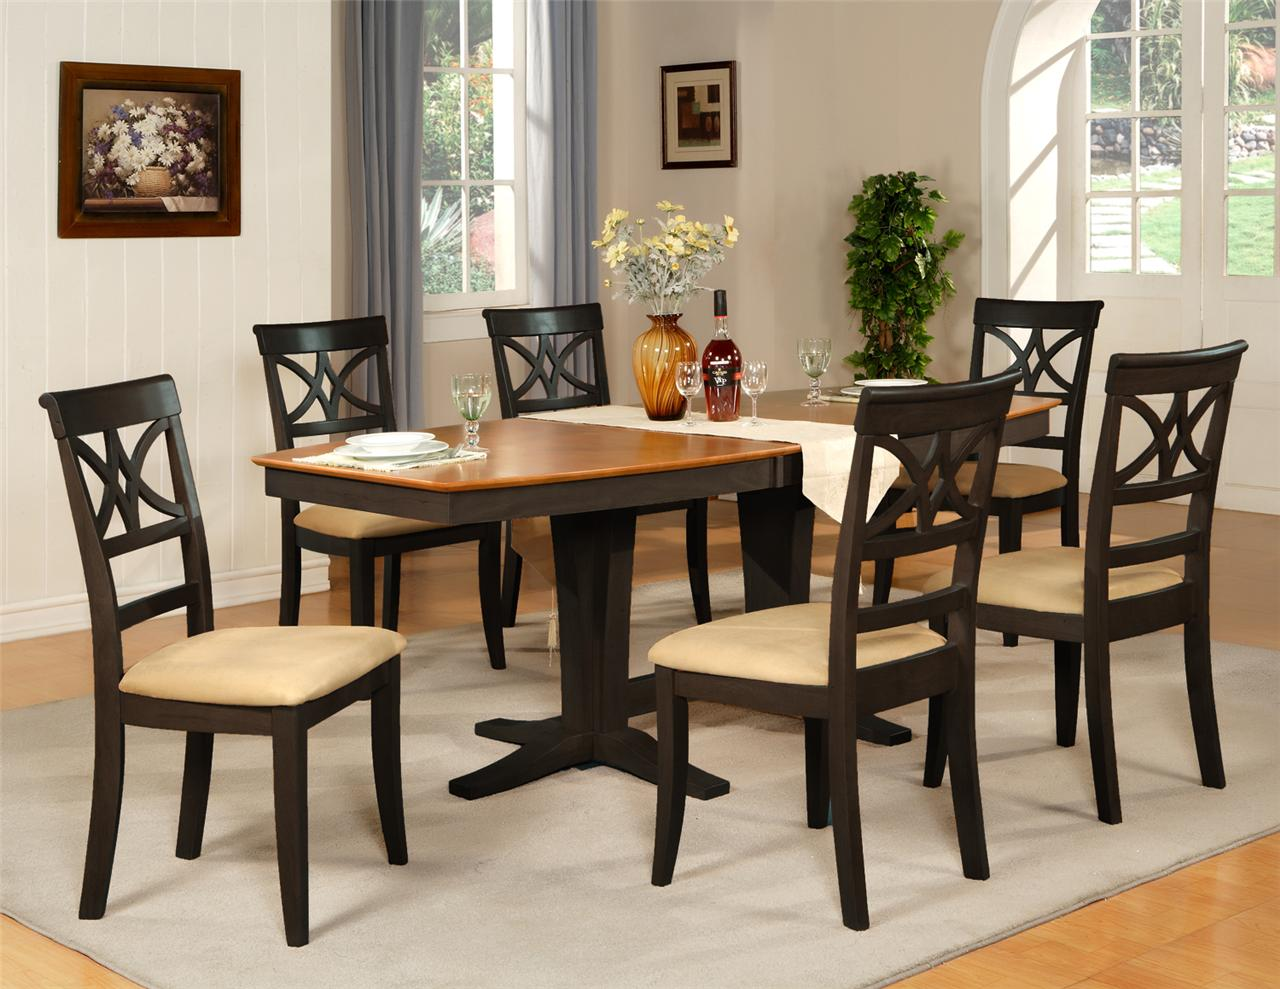 dining room table w 6 microfiber padded chairs black cherry brown